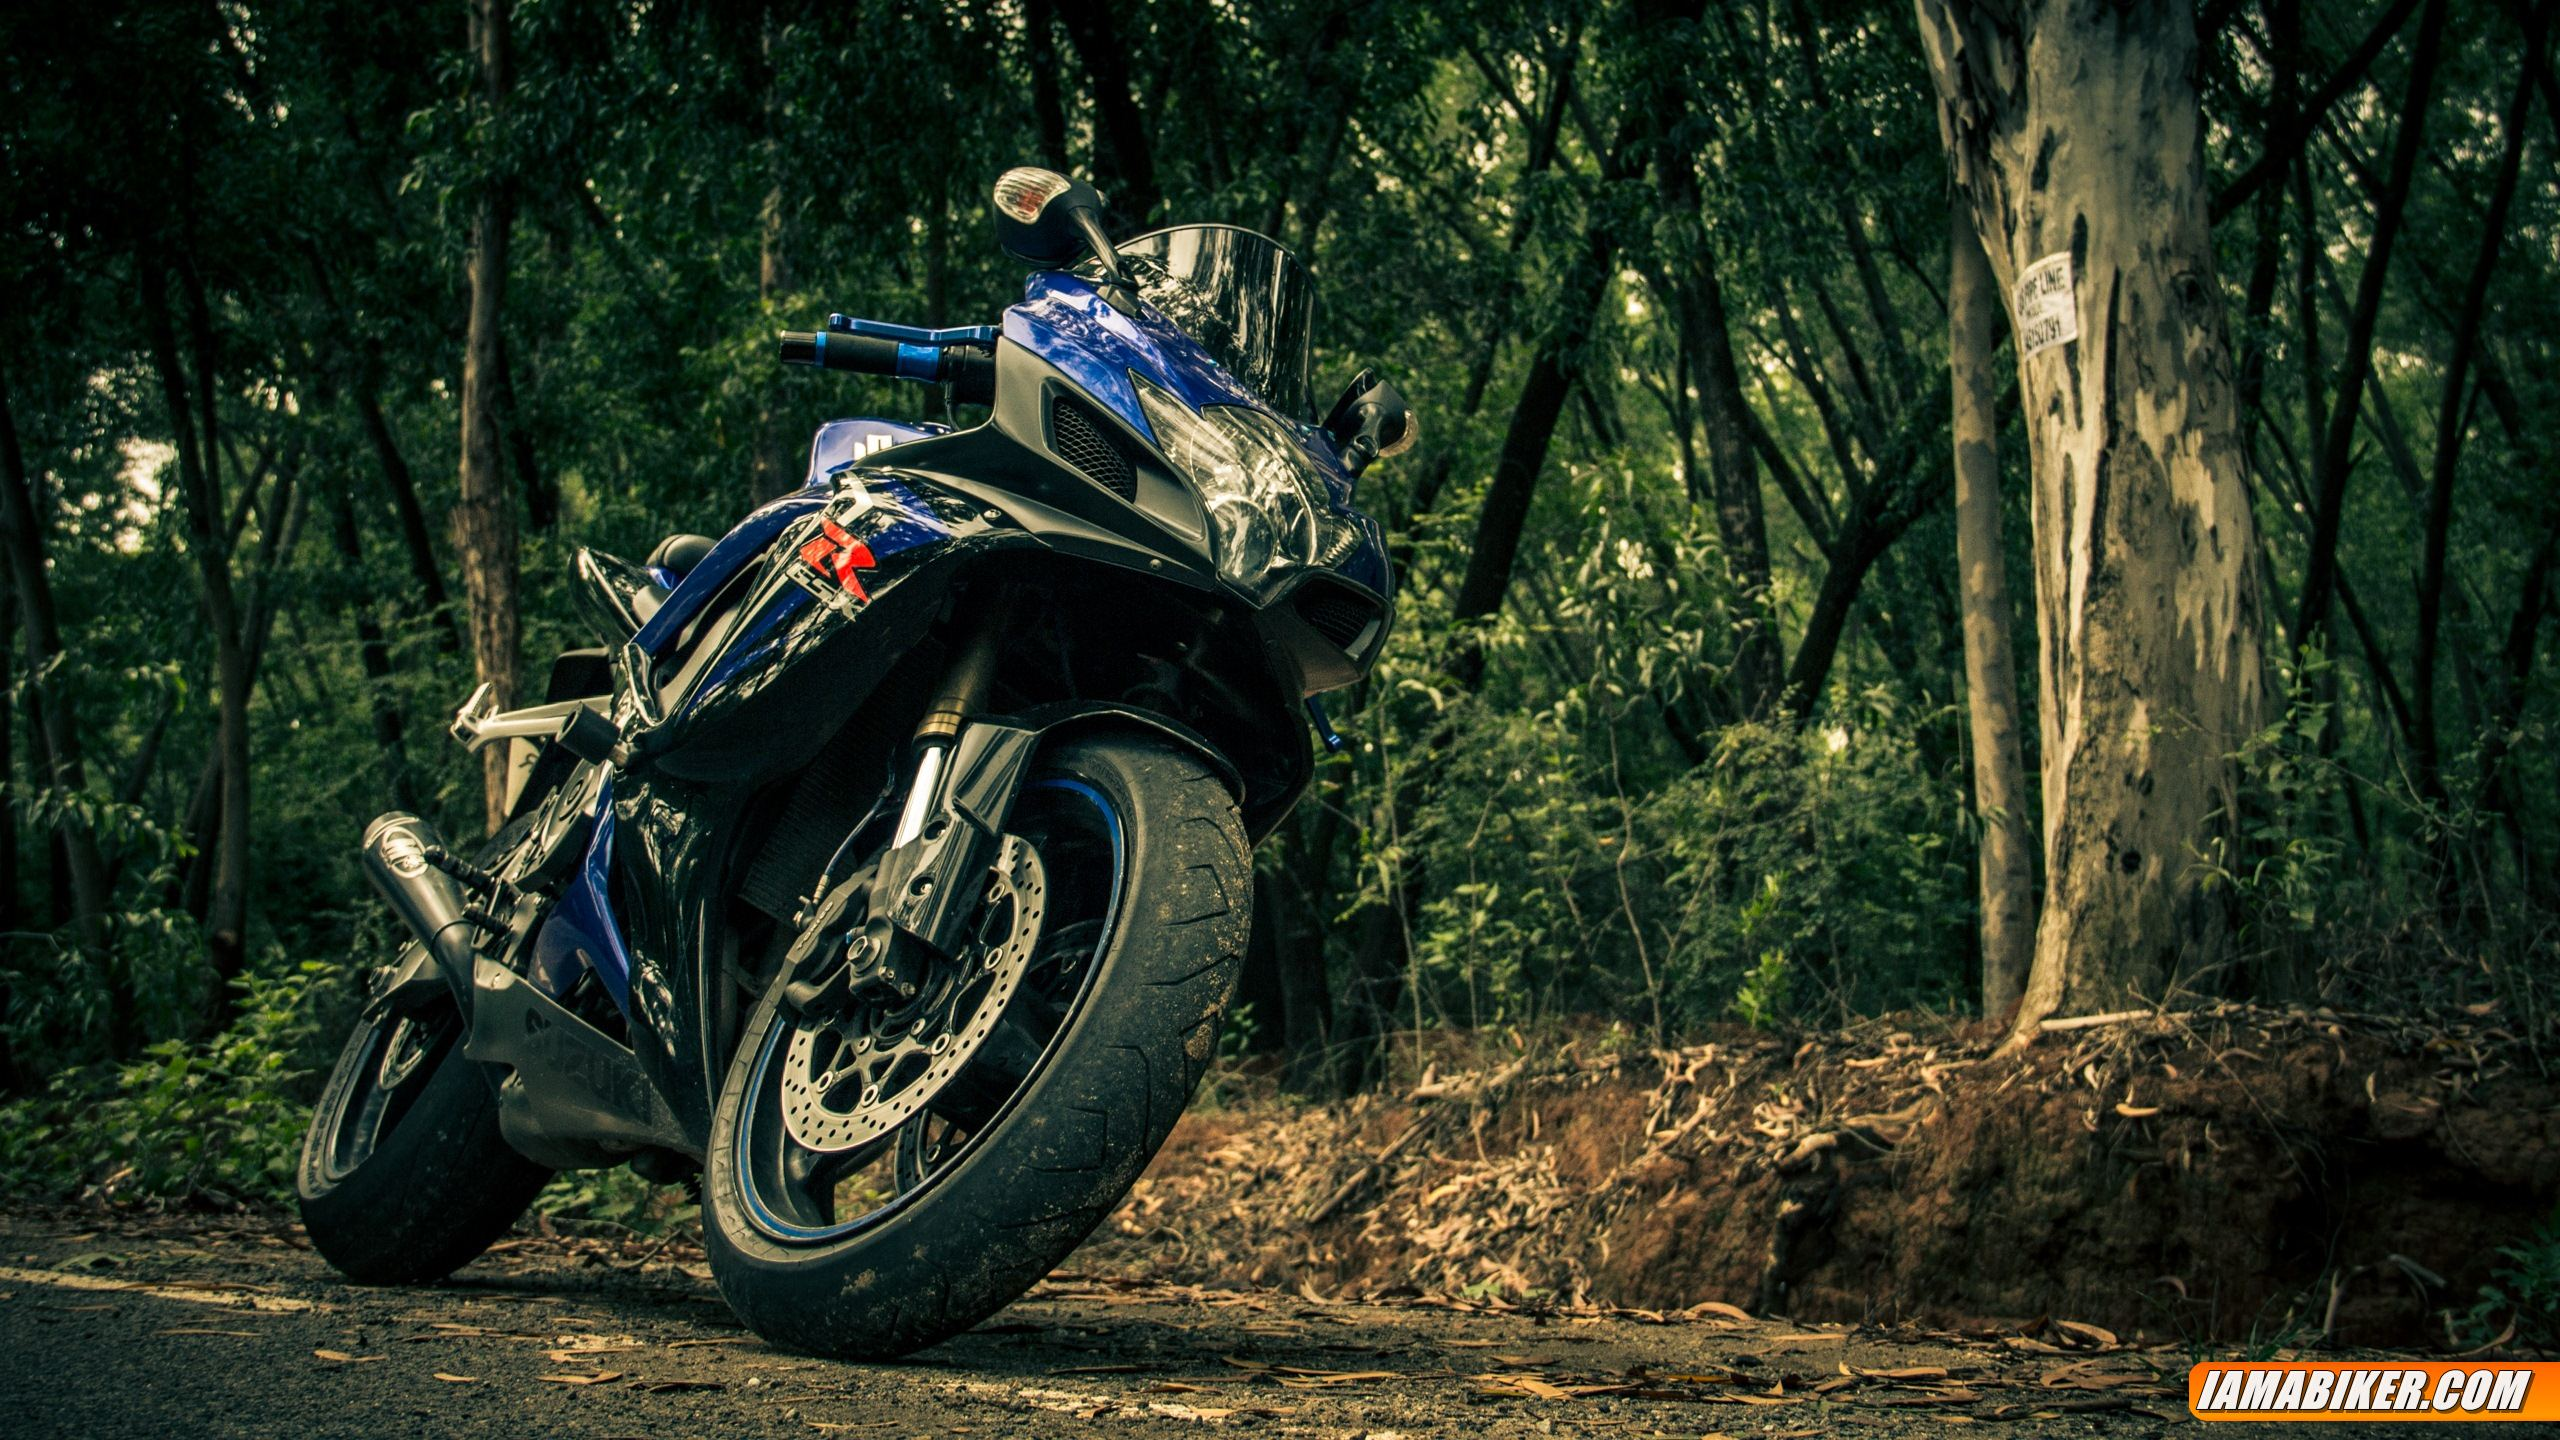 Suzuki GSX-R 600 wallpapers - 05